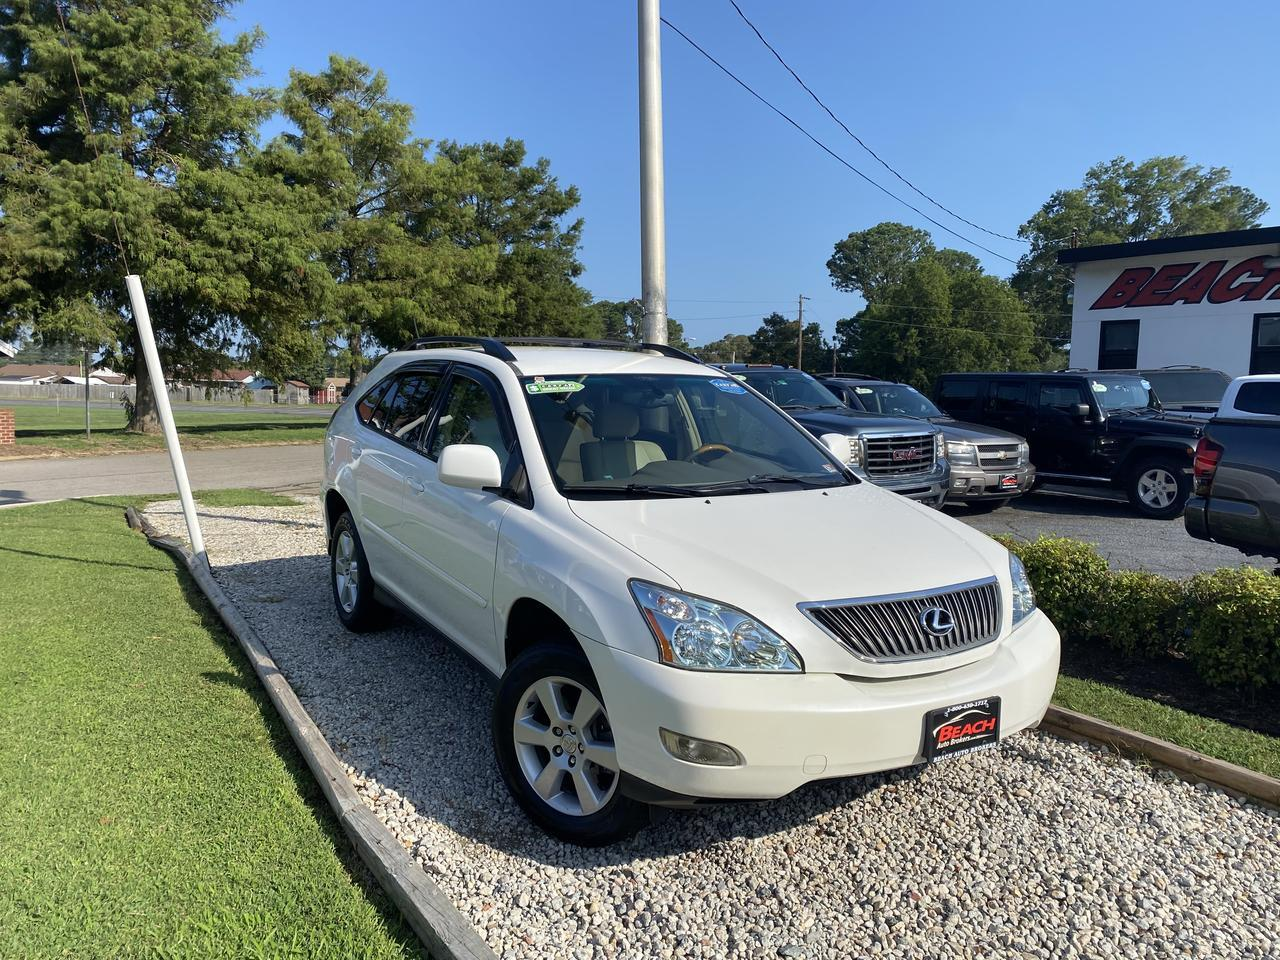 2005 LEXUS RX330 WARRANTY, SATELLITE RADIO, 6 DISC CD PLAYER,  CRUISE CONTROL, A/C, LOW MILES!